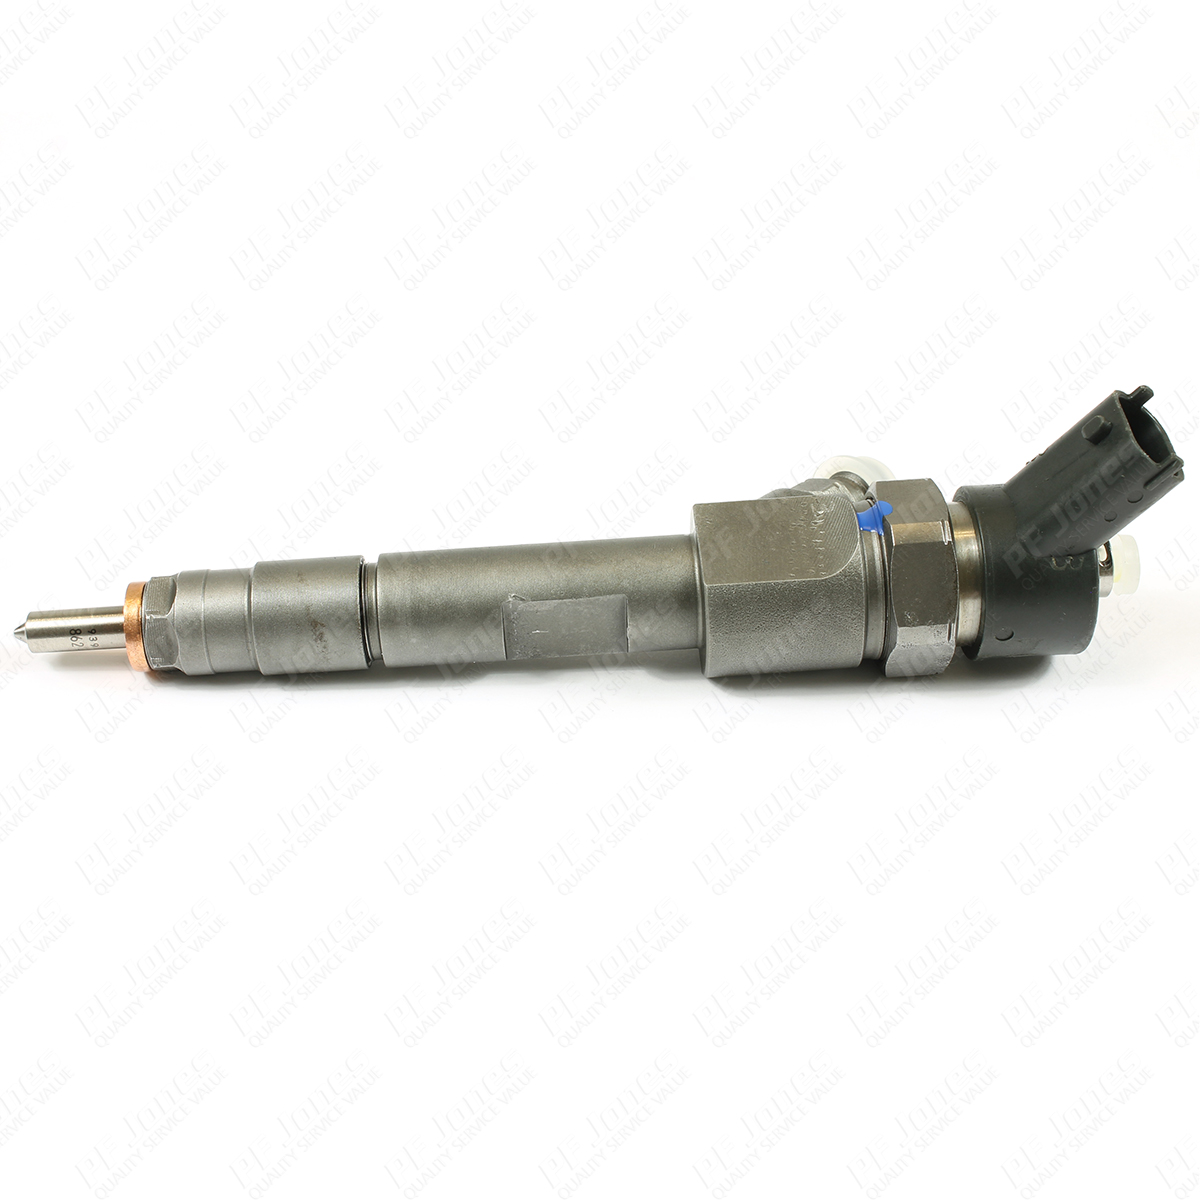 Renault Master 1.9 DCI 2000-2003 Reconditioned Bosch Diesel Injector 0445110146